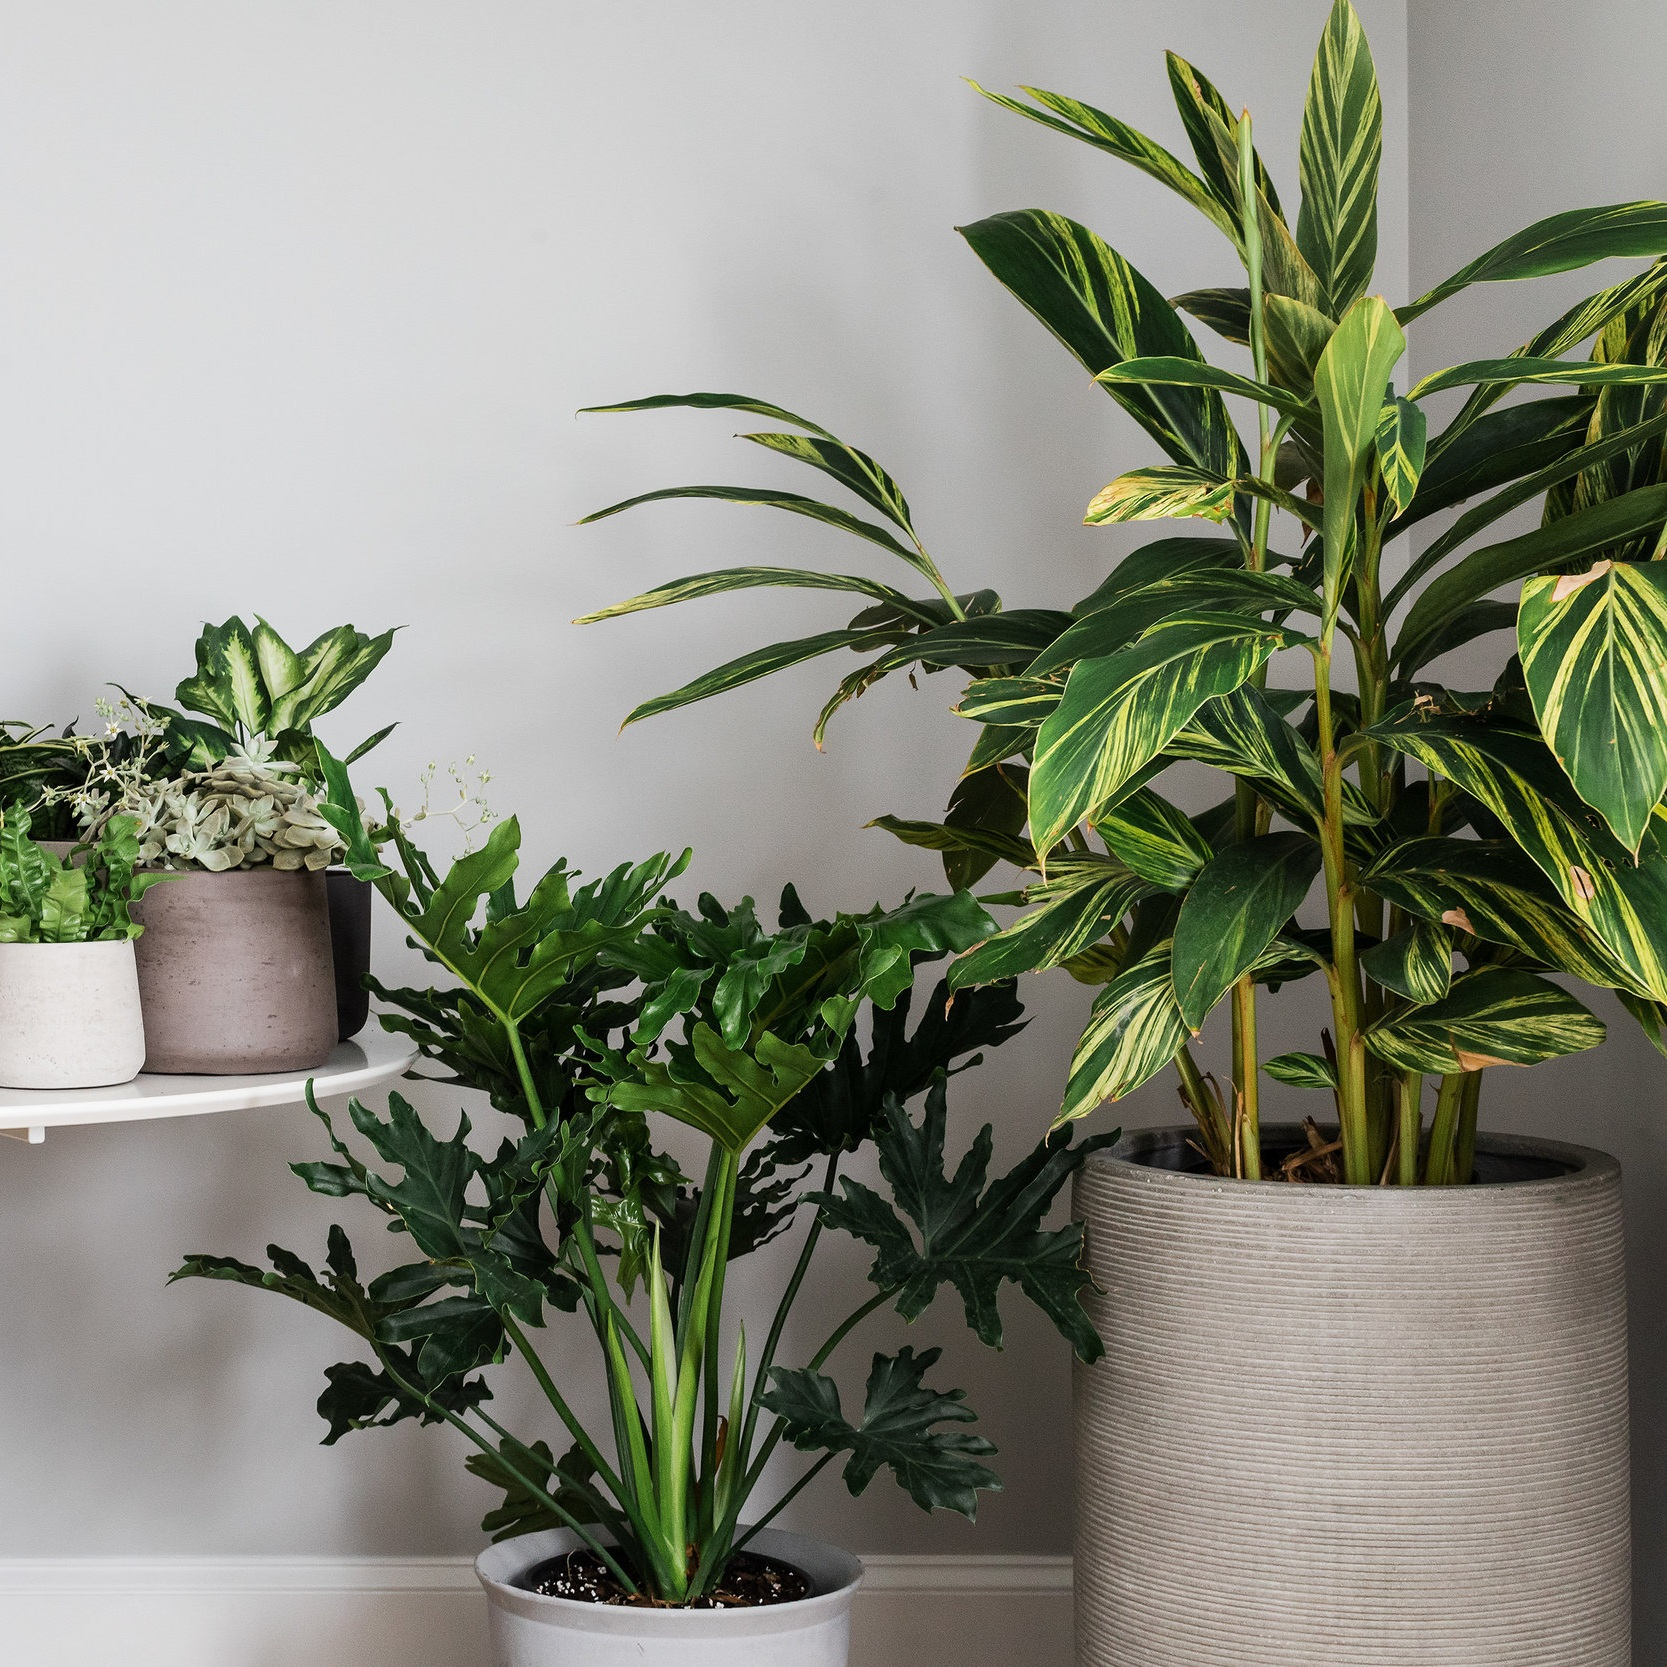 Curated Sources… Quality and Variety - We curate pottery and plants from manufacturers and growers to suit a range of design styles.We test plant varieties in controlled environments for months at a time so we are confident of their performance at clients' homes.